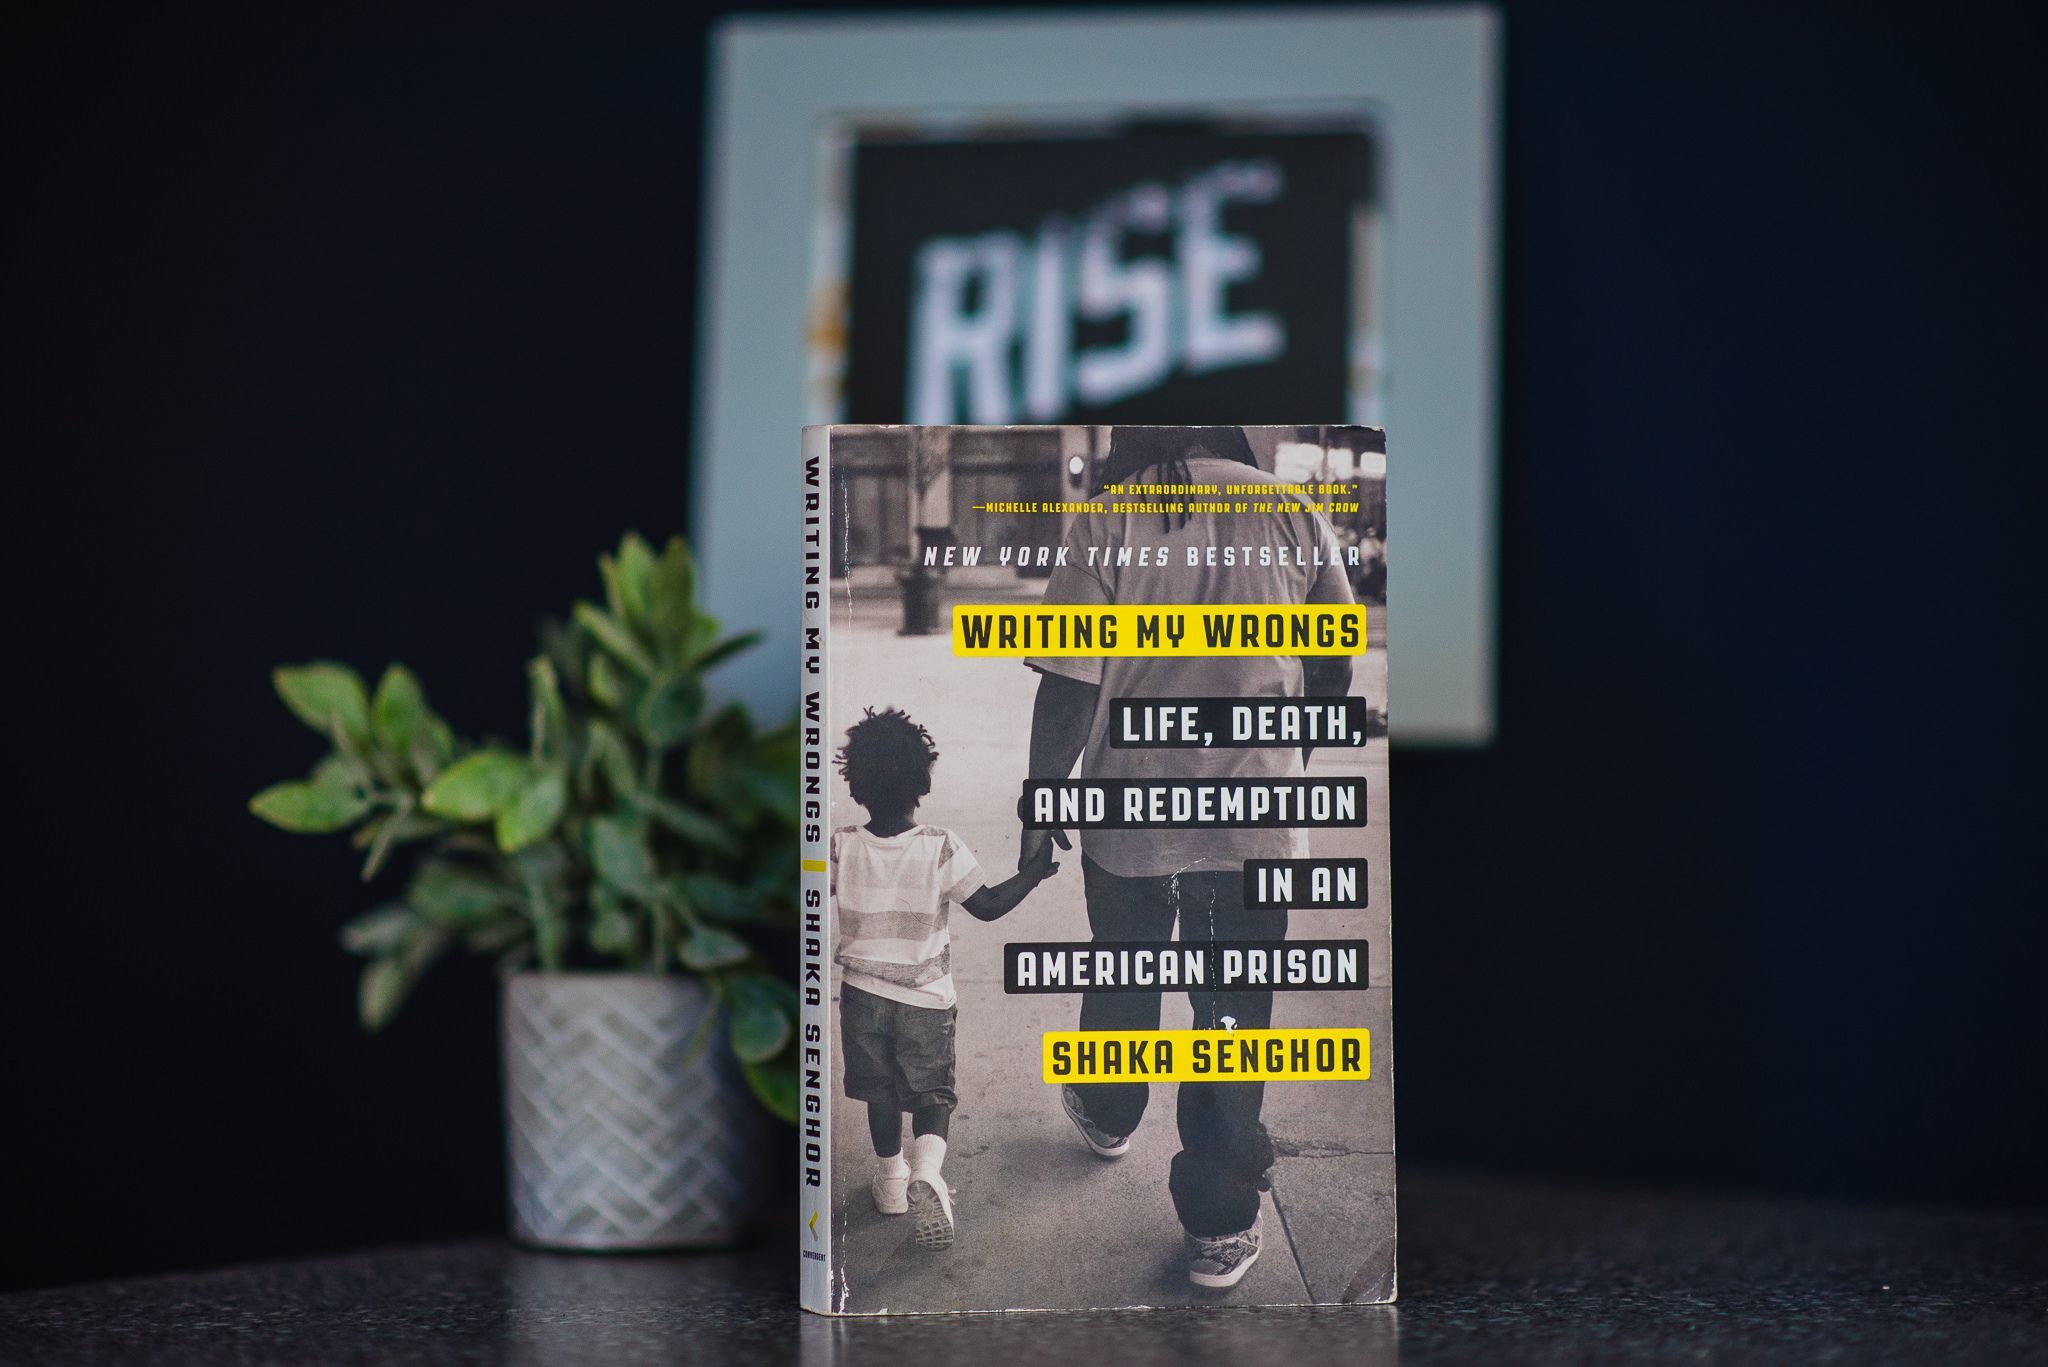 RISE Reads Recap: Writing My Wrongs by Shaka Senghor